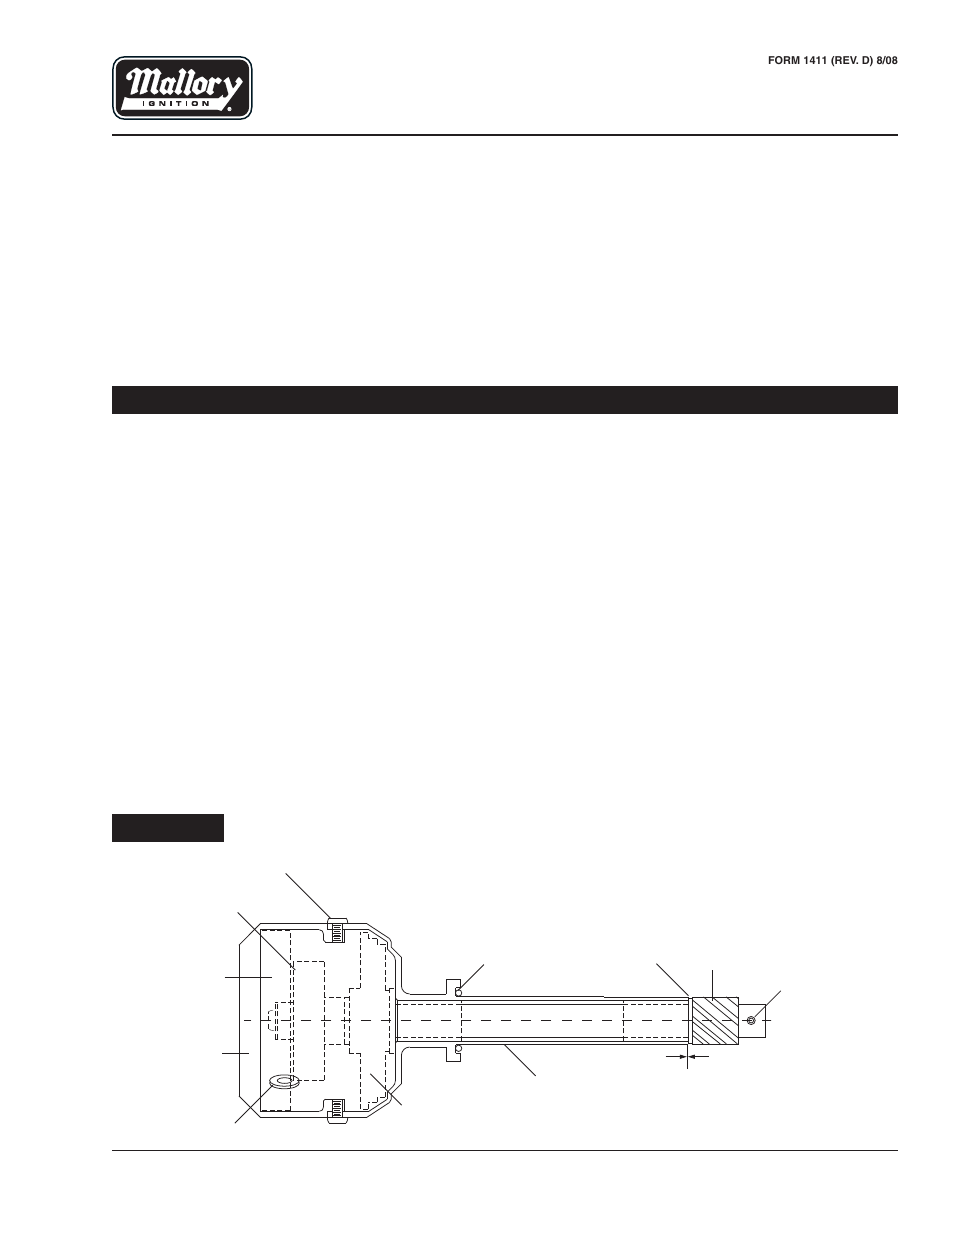 hight resolution of harley mallory distributor wiring wiring diagrams wd mallory wiring diagram unilite mallory ignition mallory unilite distributor